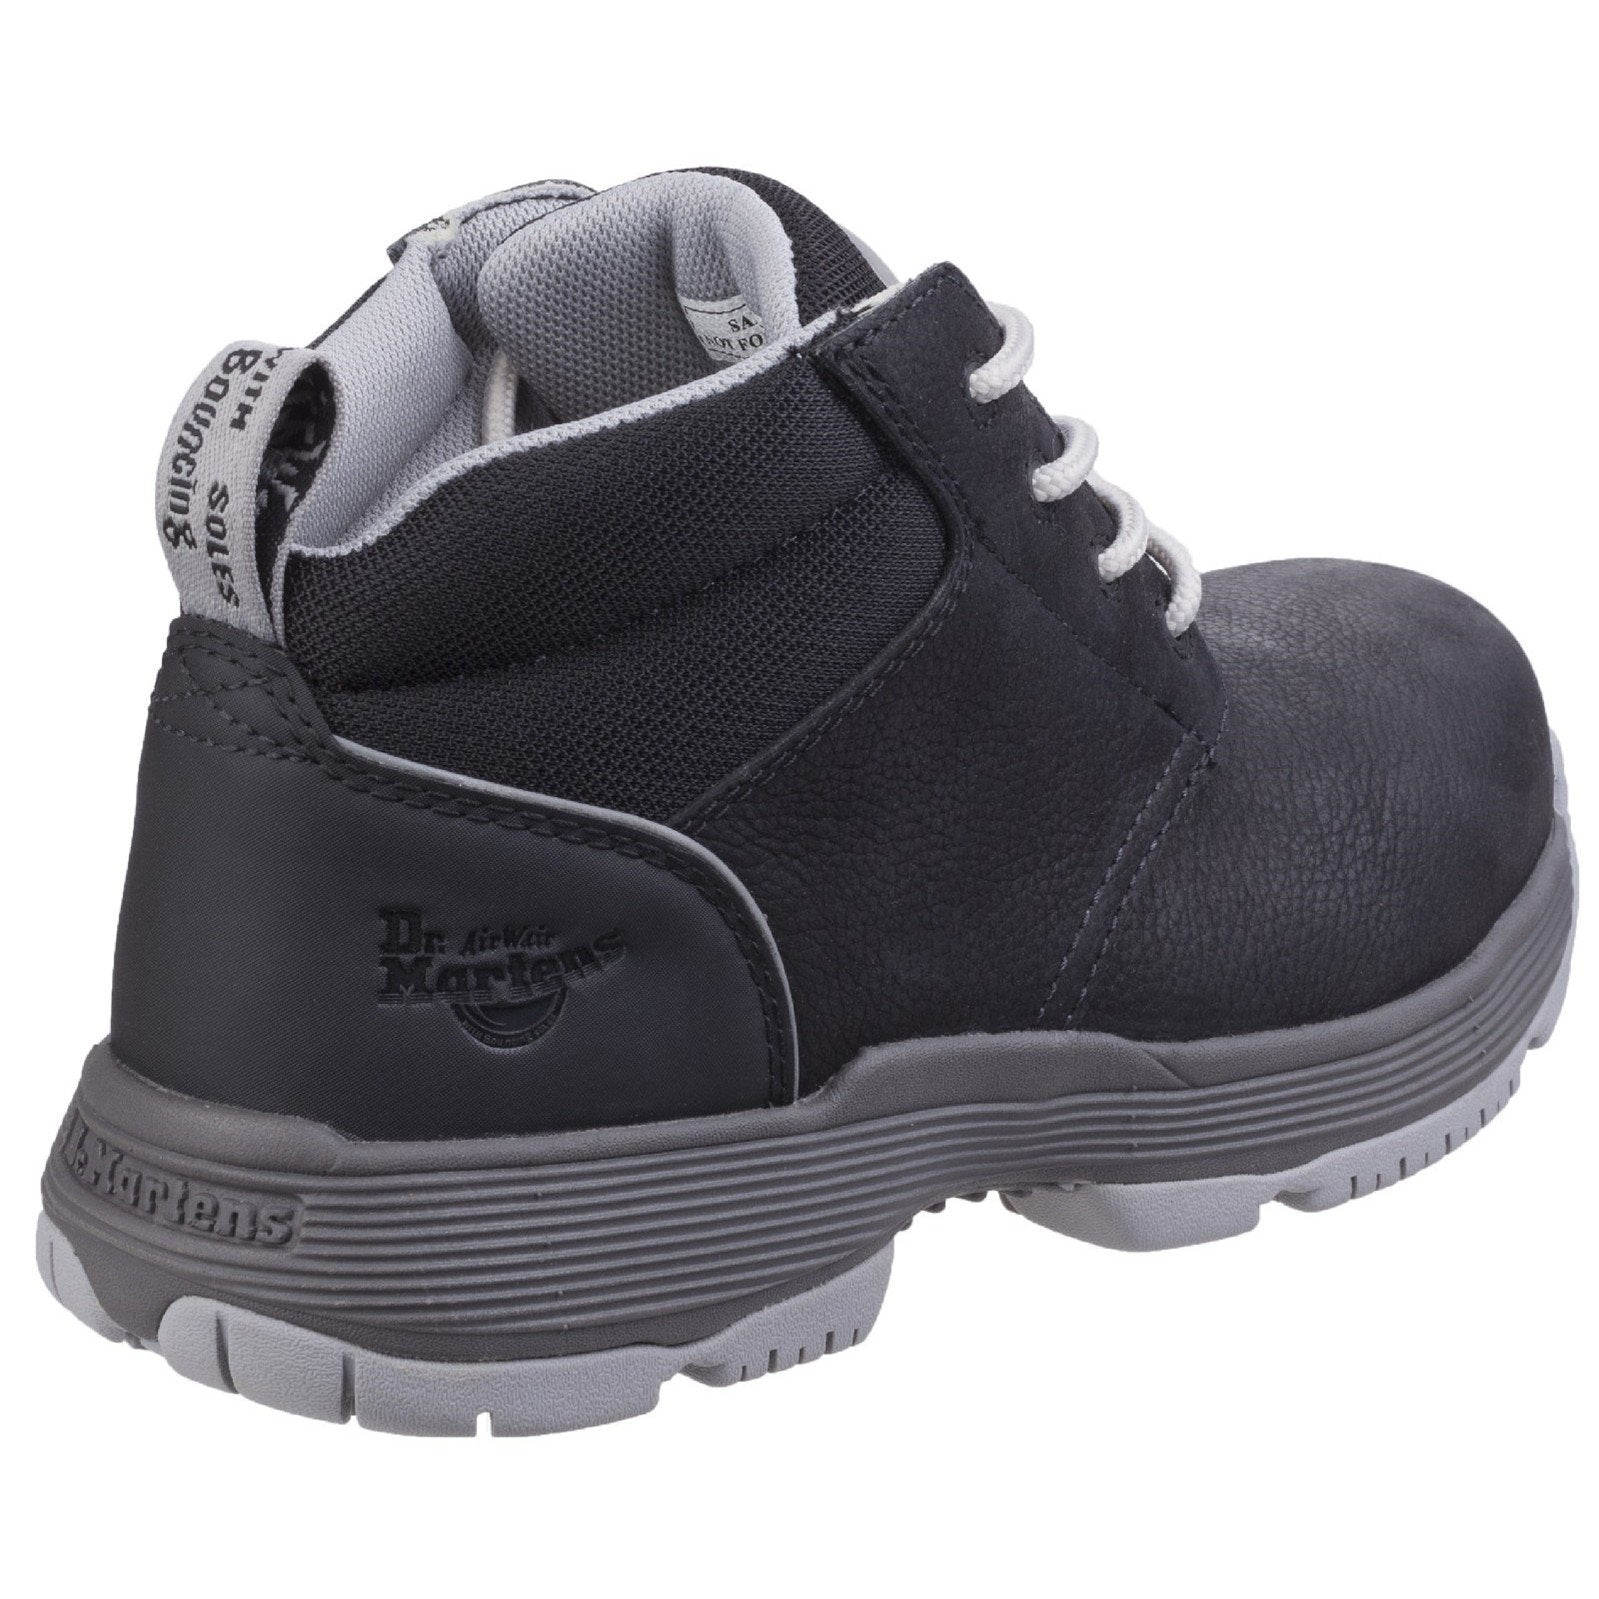 Dr Martens Westfall Safety Boots S1P